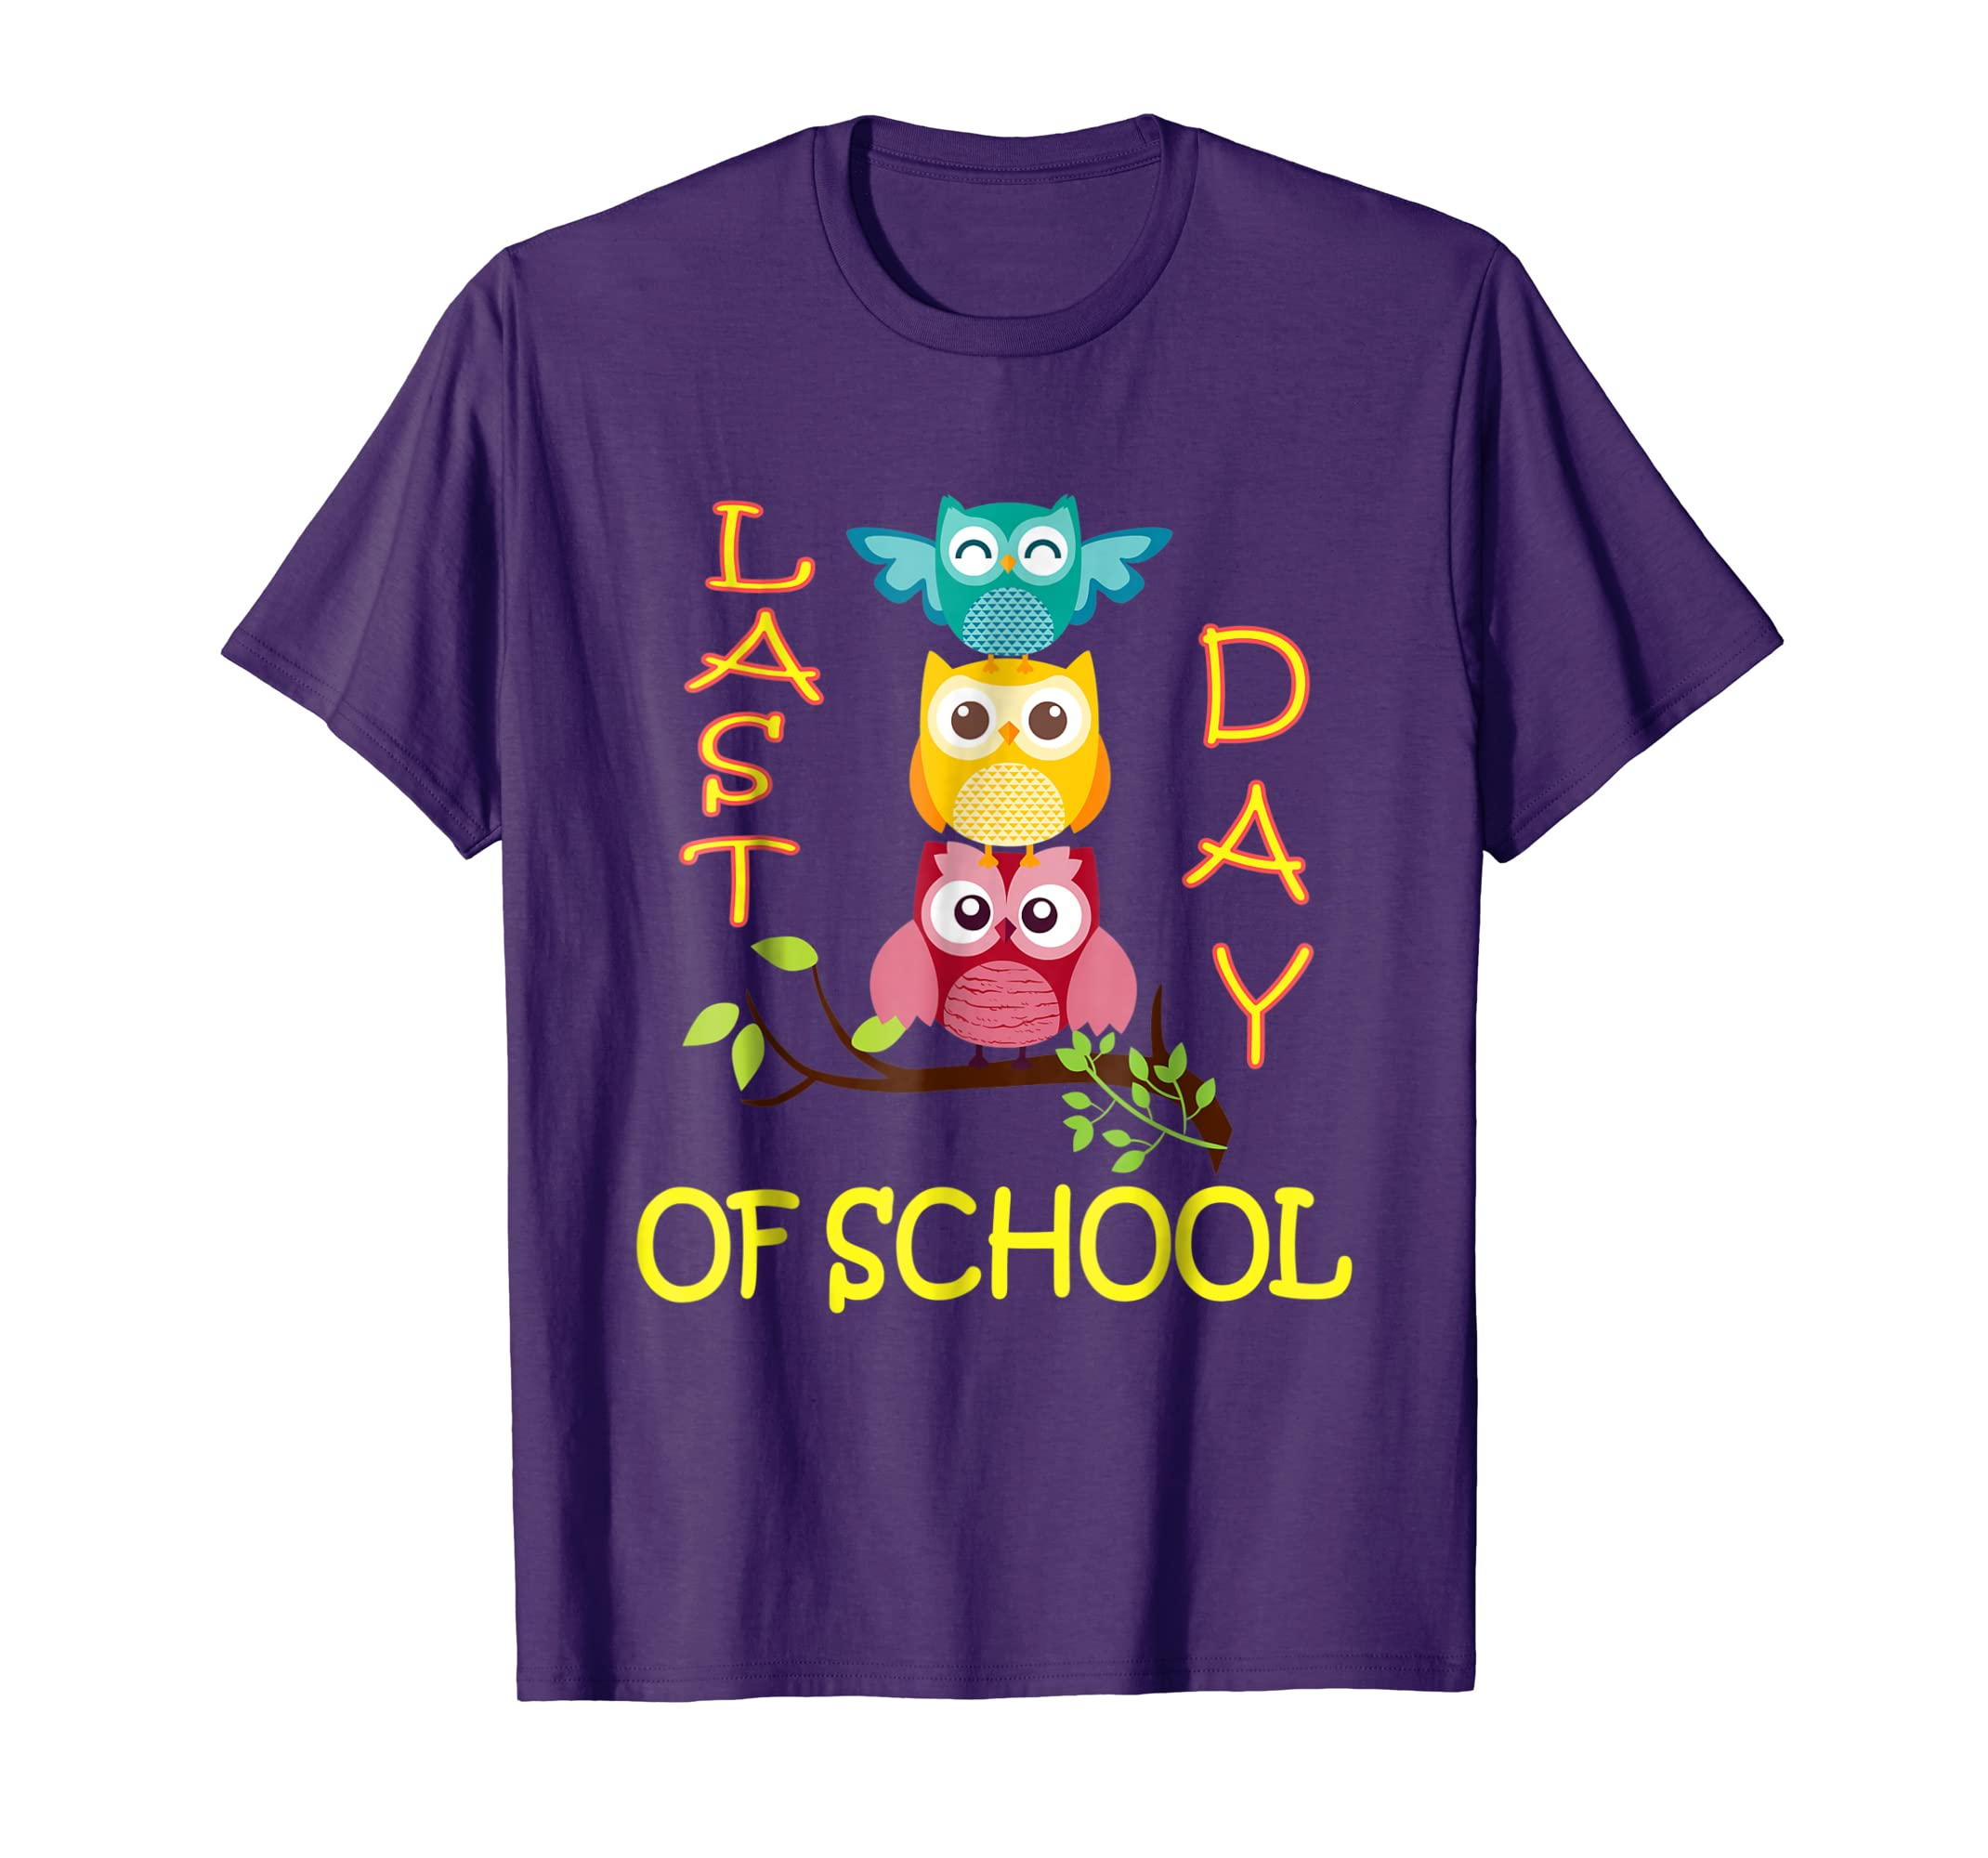 Cute Owls Emotion Face T-Shirt Happy Last Day Of School-AZP